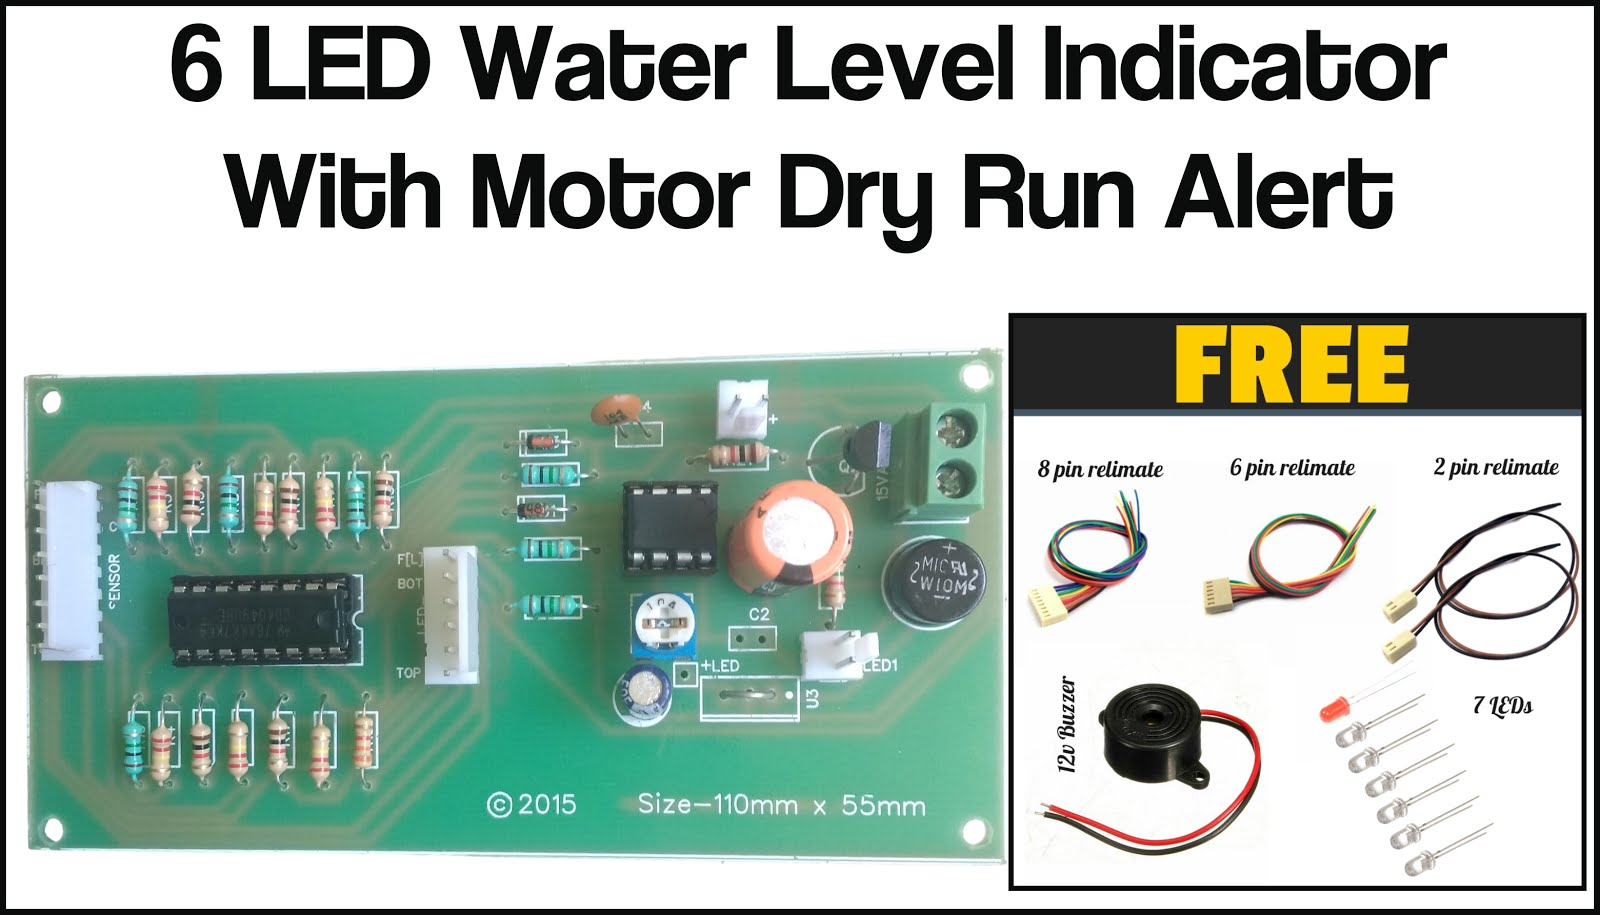 Electrolysis Free Water Level Sensor Meter Gauge Circuit Wiring Diagram For Liquid Switches Indicator Circuits Tank